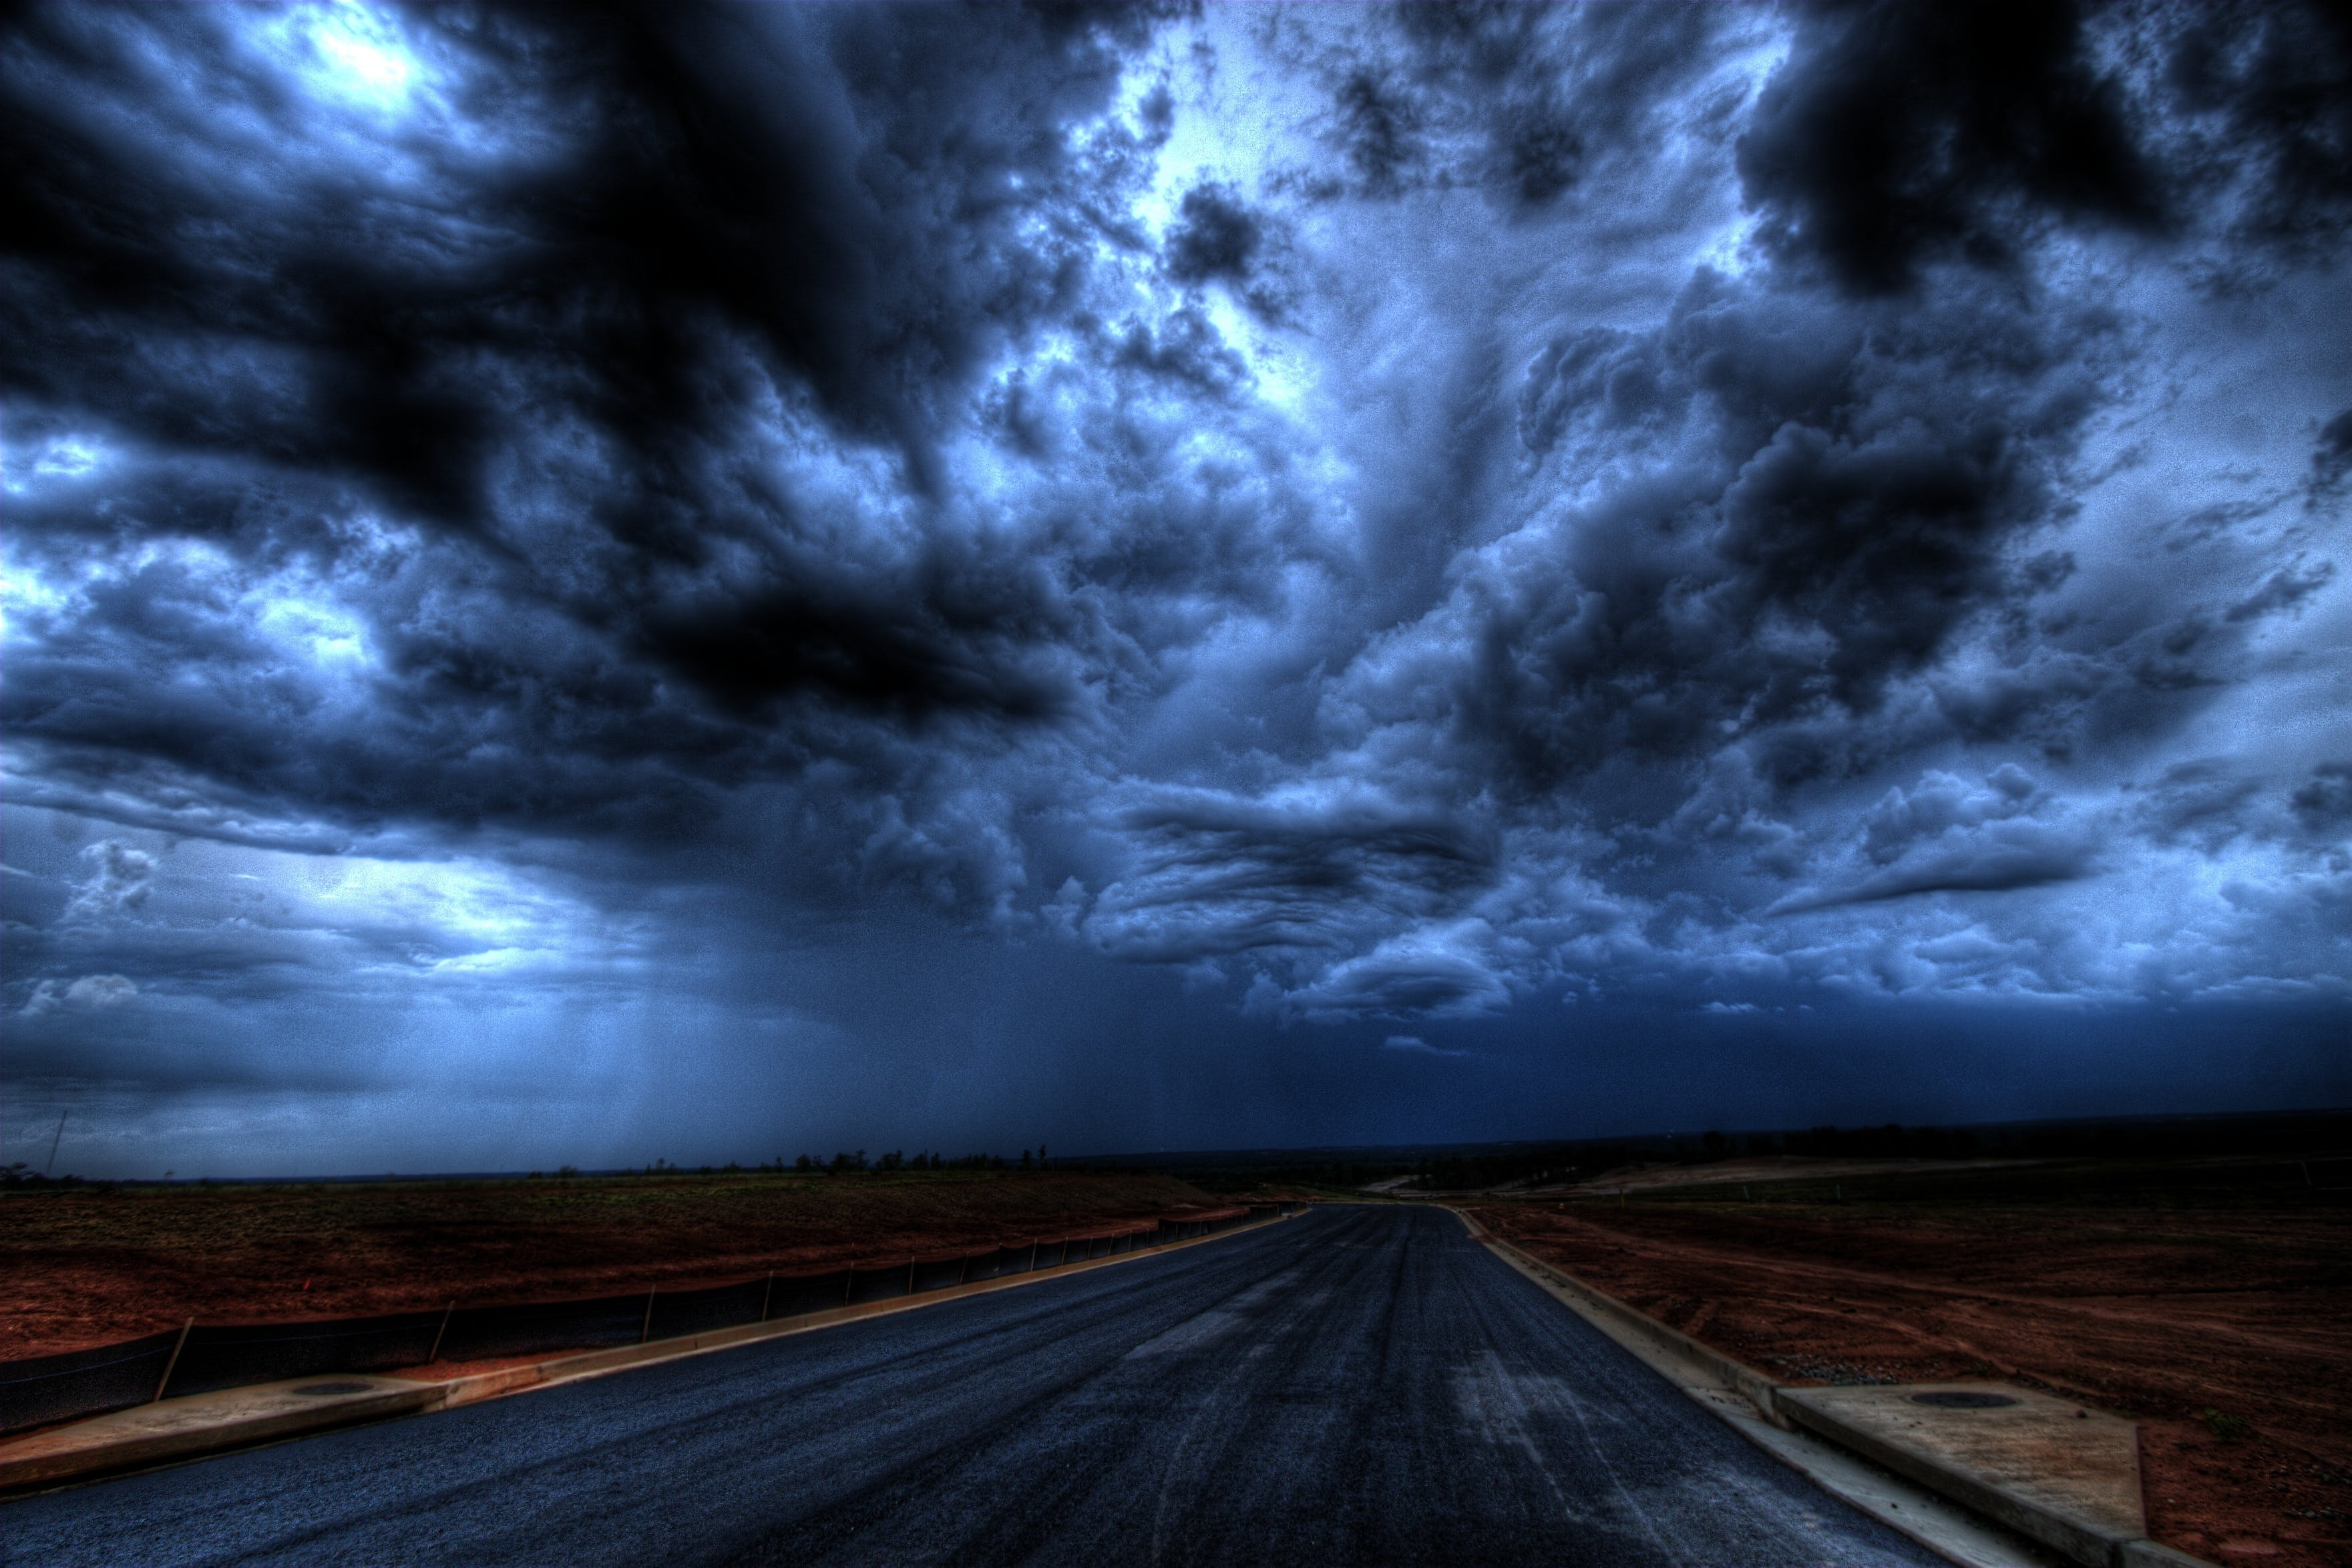 Asphalt Road Under Gray Clouds